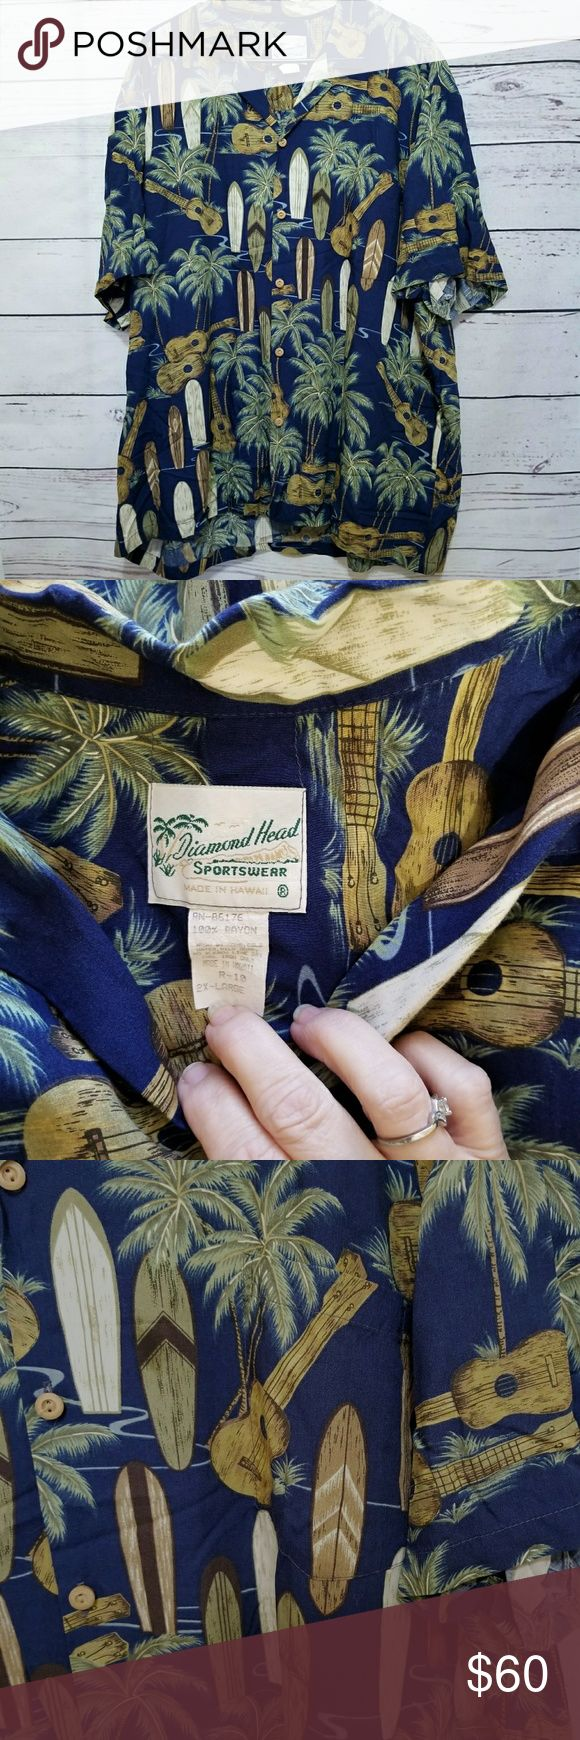 """Vintage Diamond Head Sportswear Hawaiian shirt Vintage Diamond Head Sportswear Hawaiian shirt navy blue surfboards ukulele palm trees 100% rayon. Style R-10 Size XXL EUC!! No damage, stains or holes. Classic Hawaiian shirt made in Hawaii. Ukulele and surfboards print on navy blue. Wooden buttons. Armpit to armpit: 28"""" Sleeve length from underarm: 5"""" Overall length:31"""" **All measurements are done unstretched, flat lay and are approx.  ☆Smoke Free home Diamond Head Sportswear Shirts Casual…"""